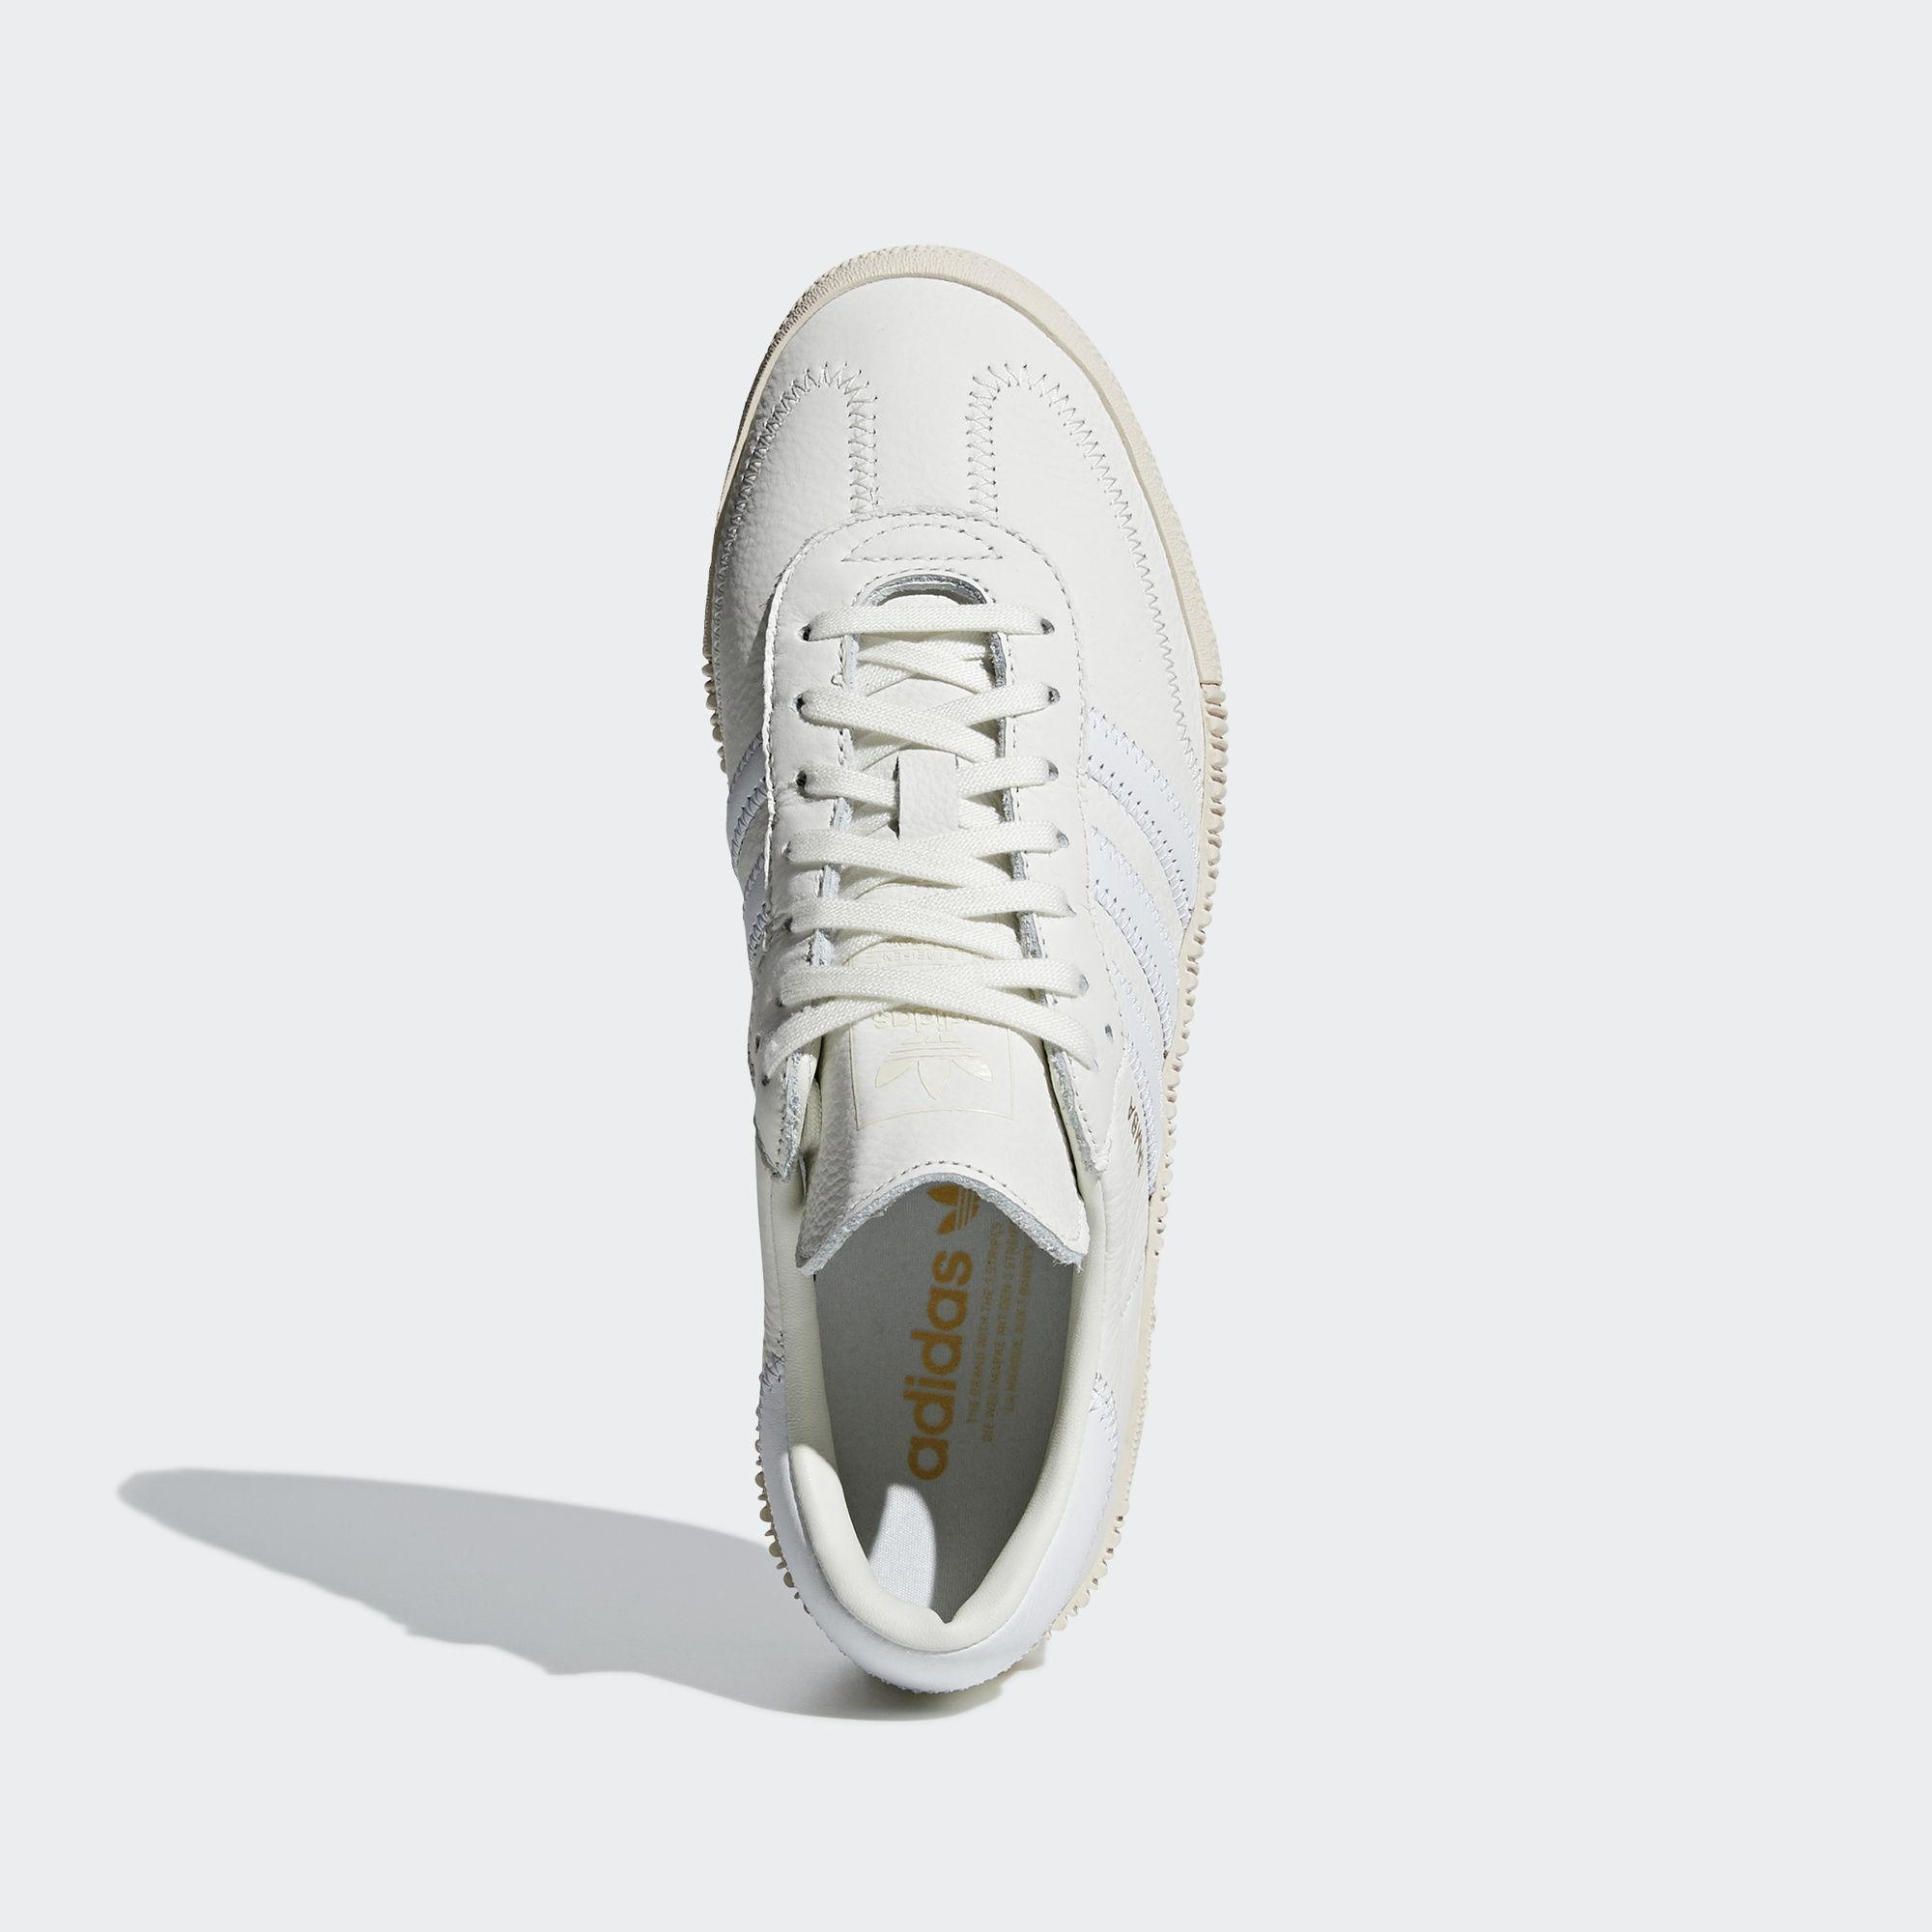 on sale b427f 319a4 adidas Sambarose Shoes in White - Lyst